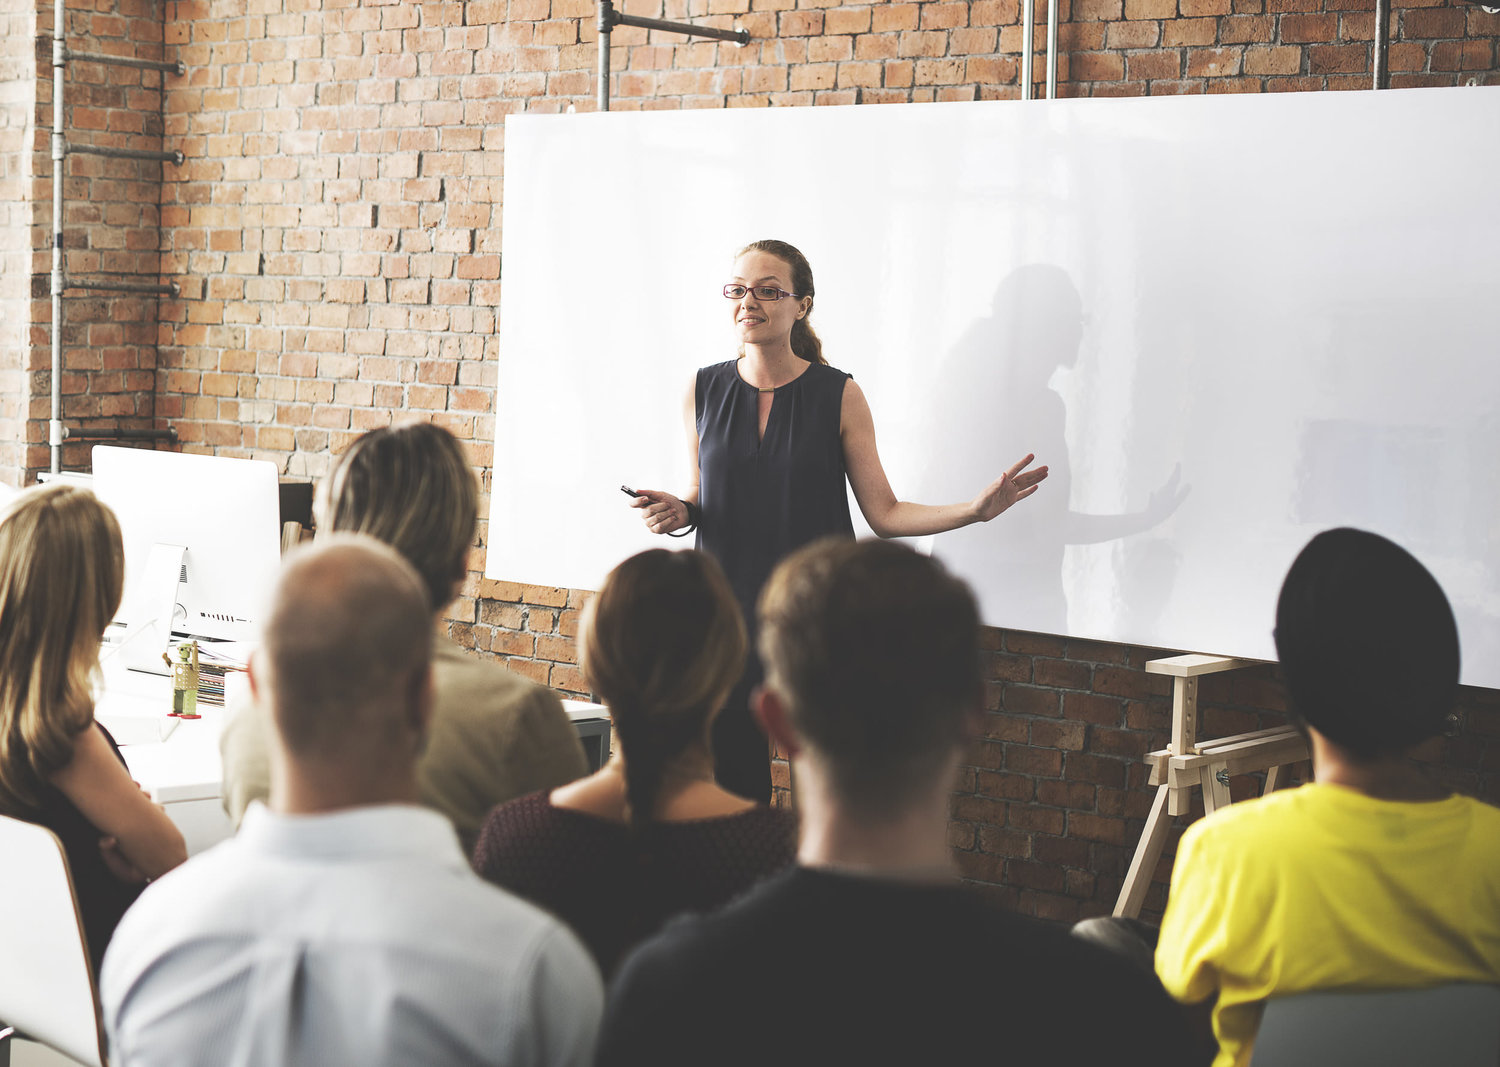 Fear of Public Speaking – Can Speech Therapy Really Help?